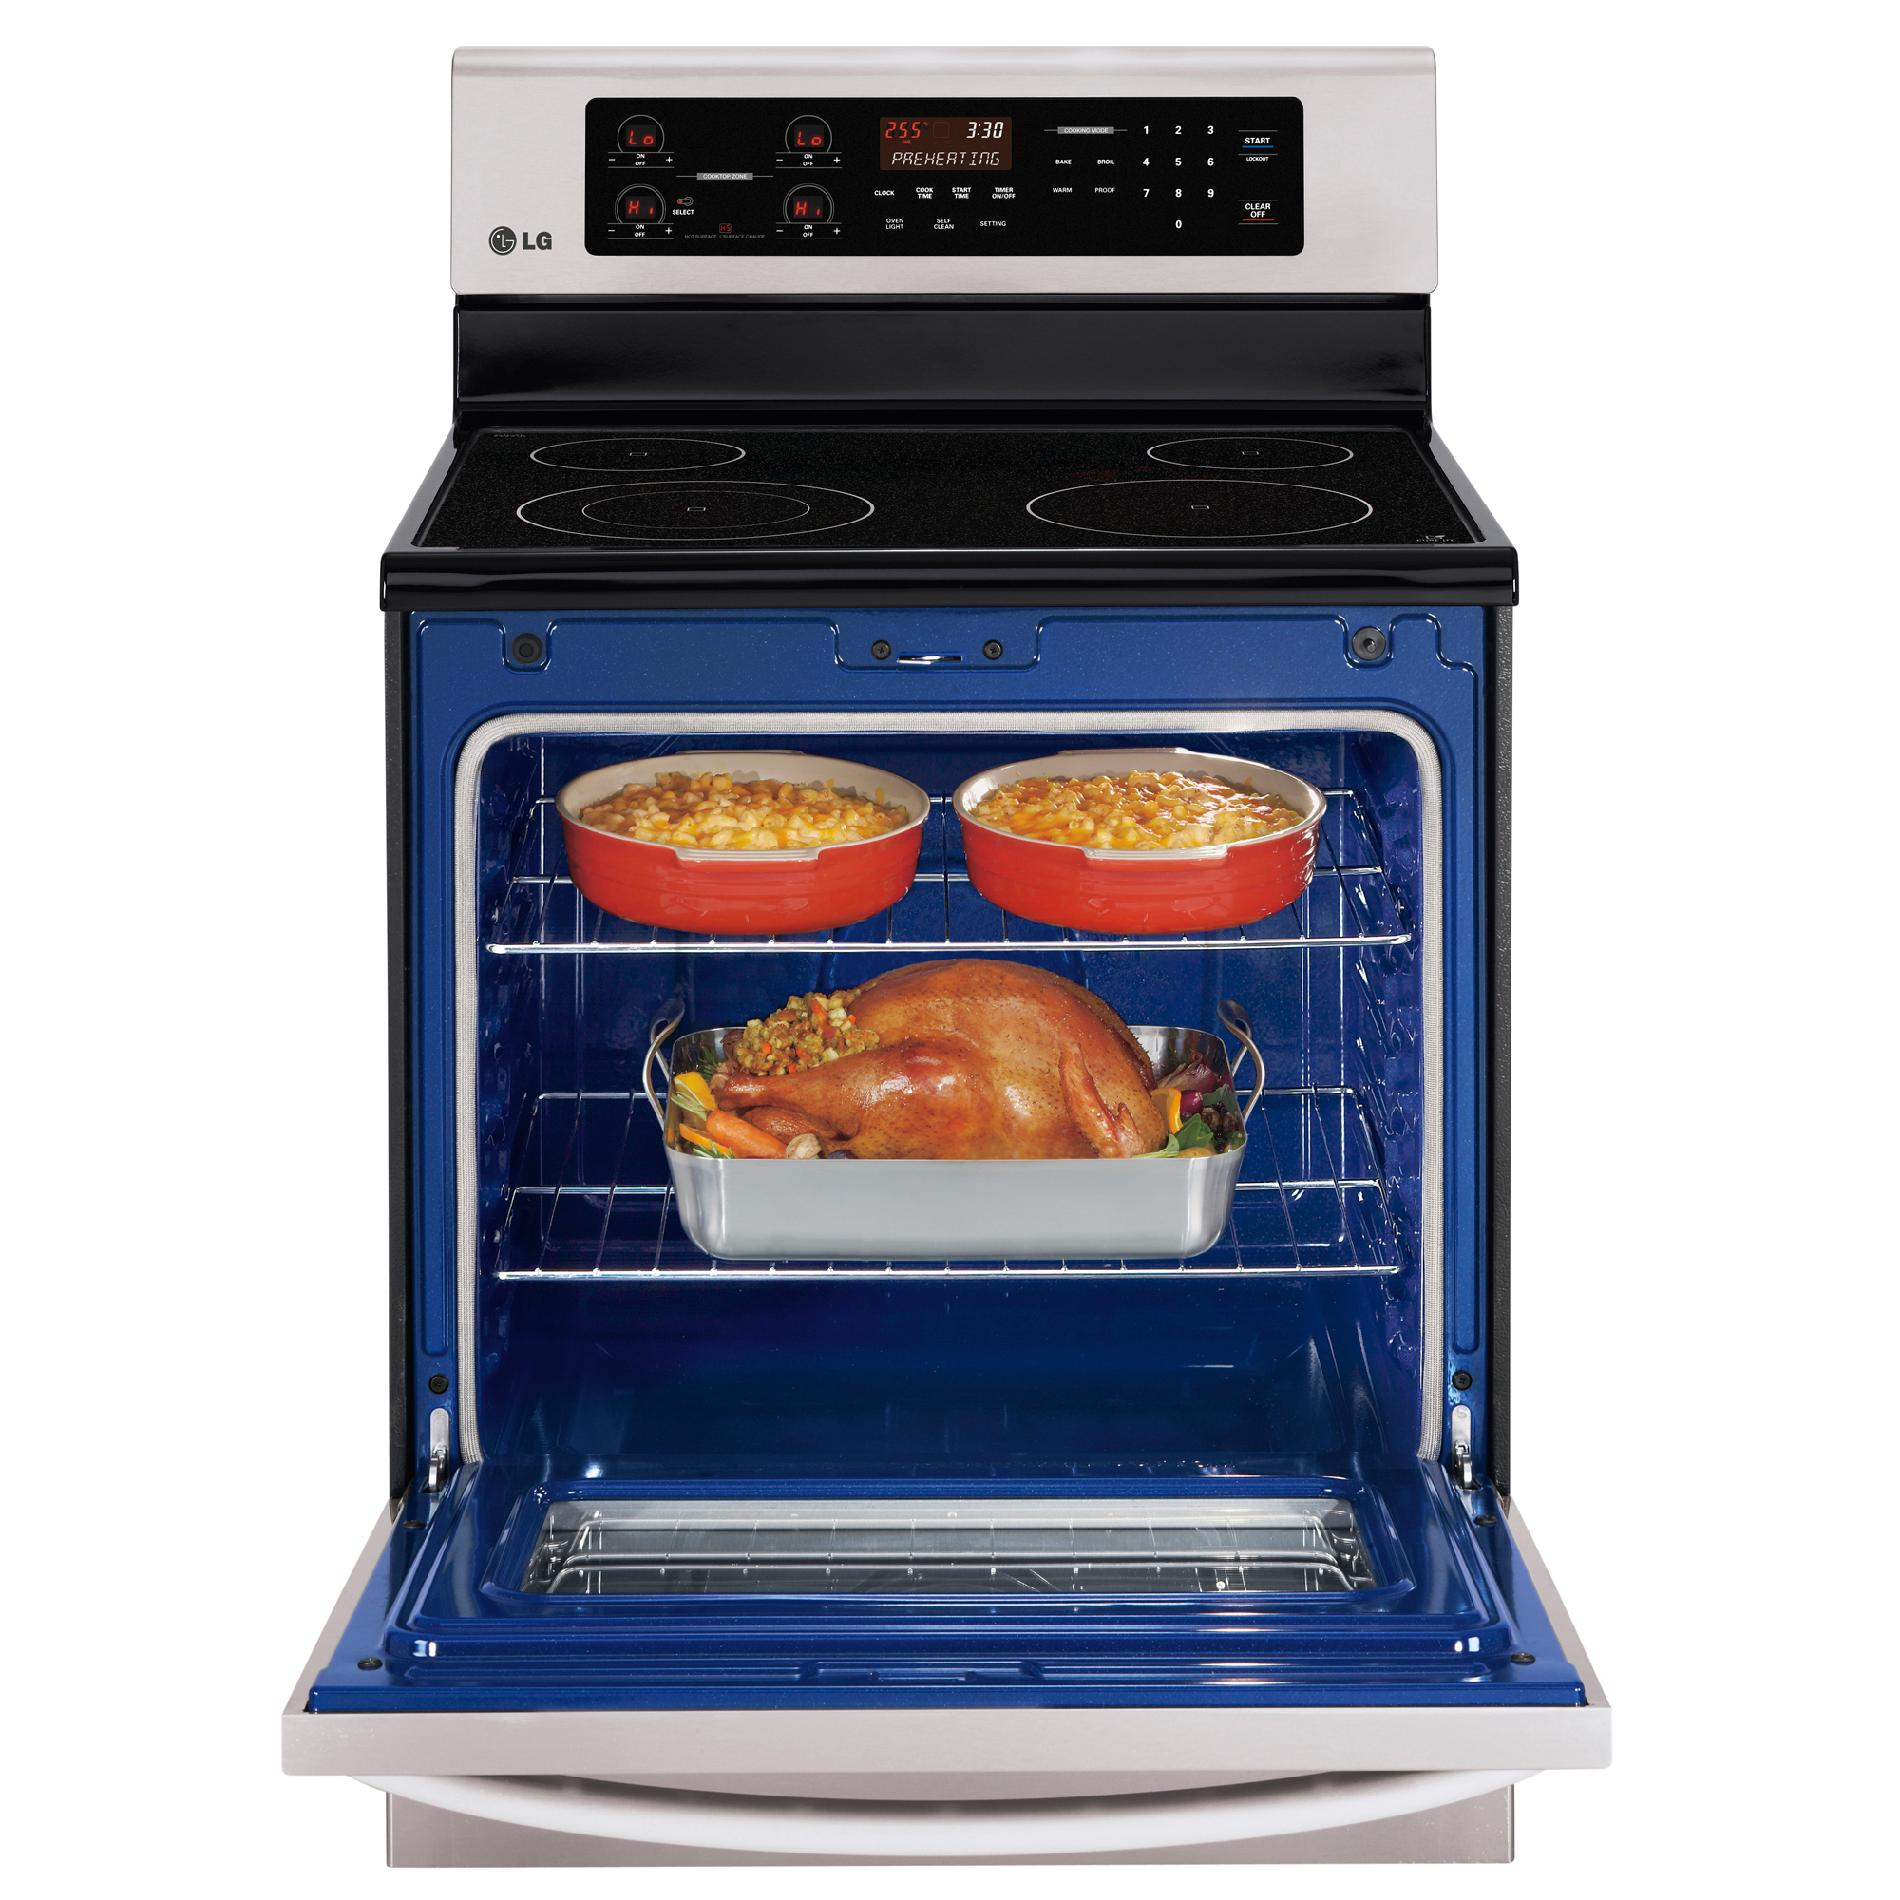 LG 6.3 cu. ft. Electric Range - Stainless Steel